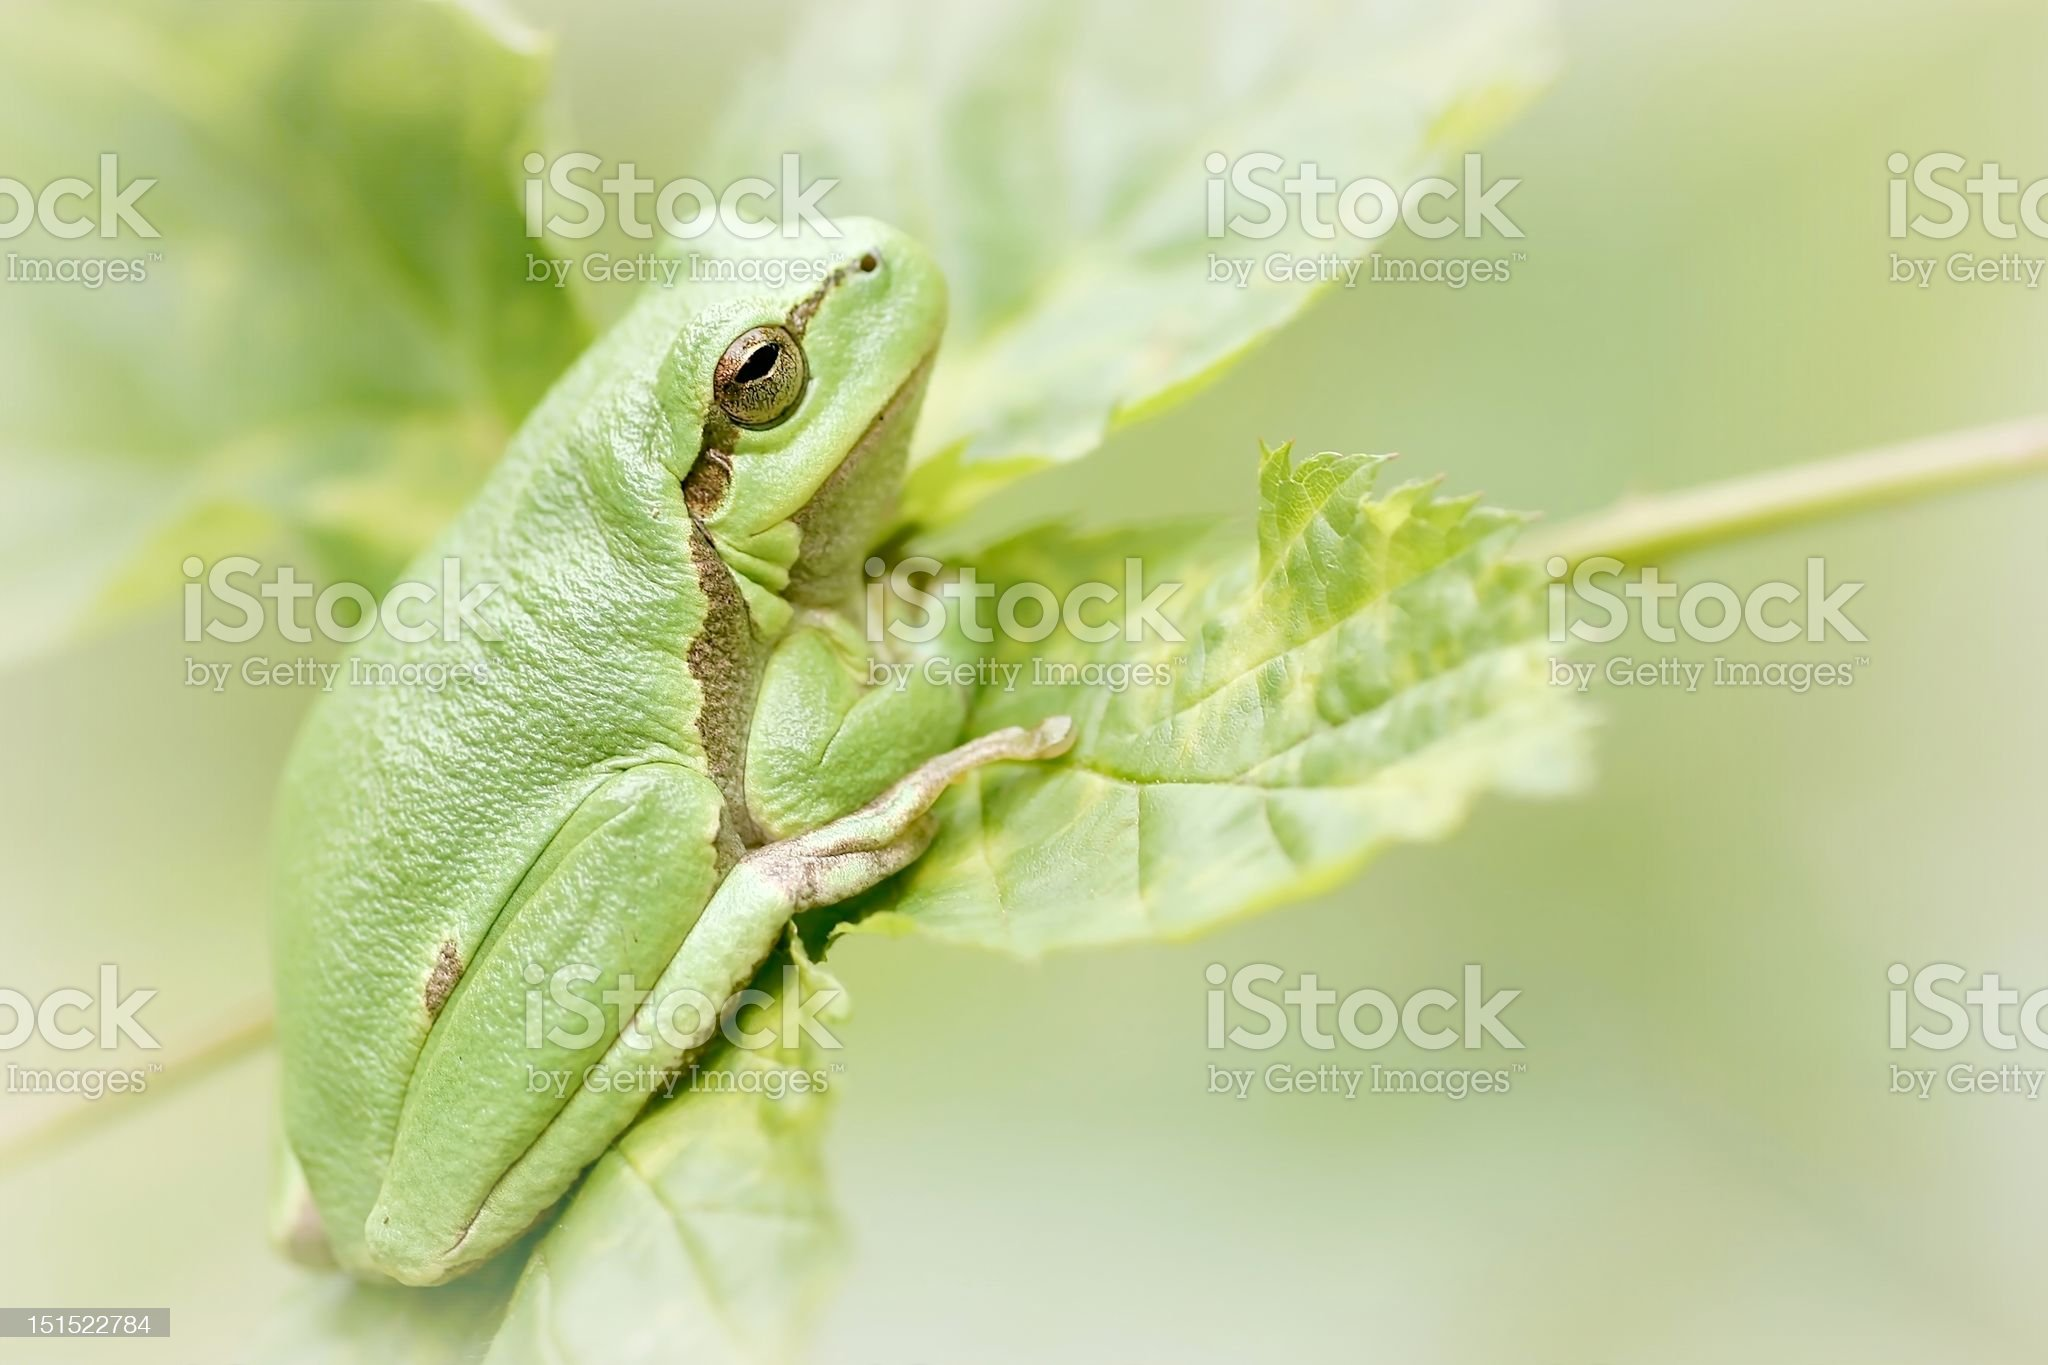 Beautiful green tree frog on a leaf royalty-free stock photo